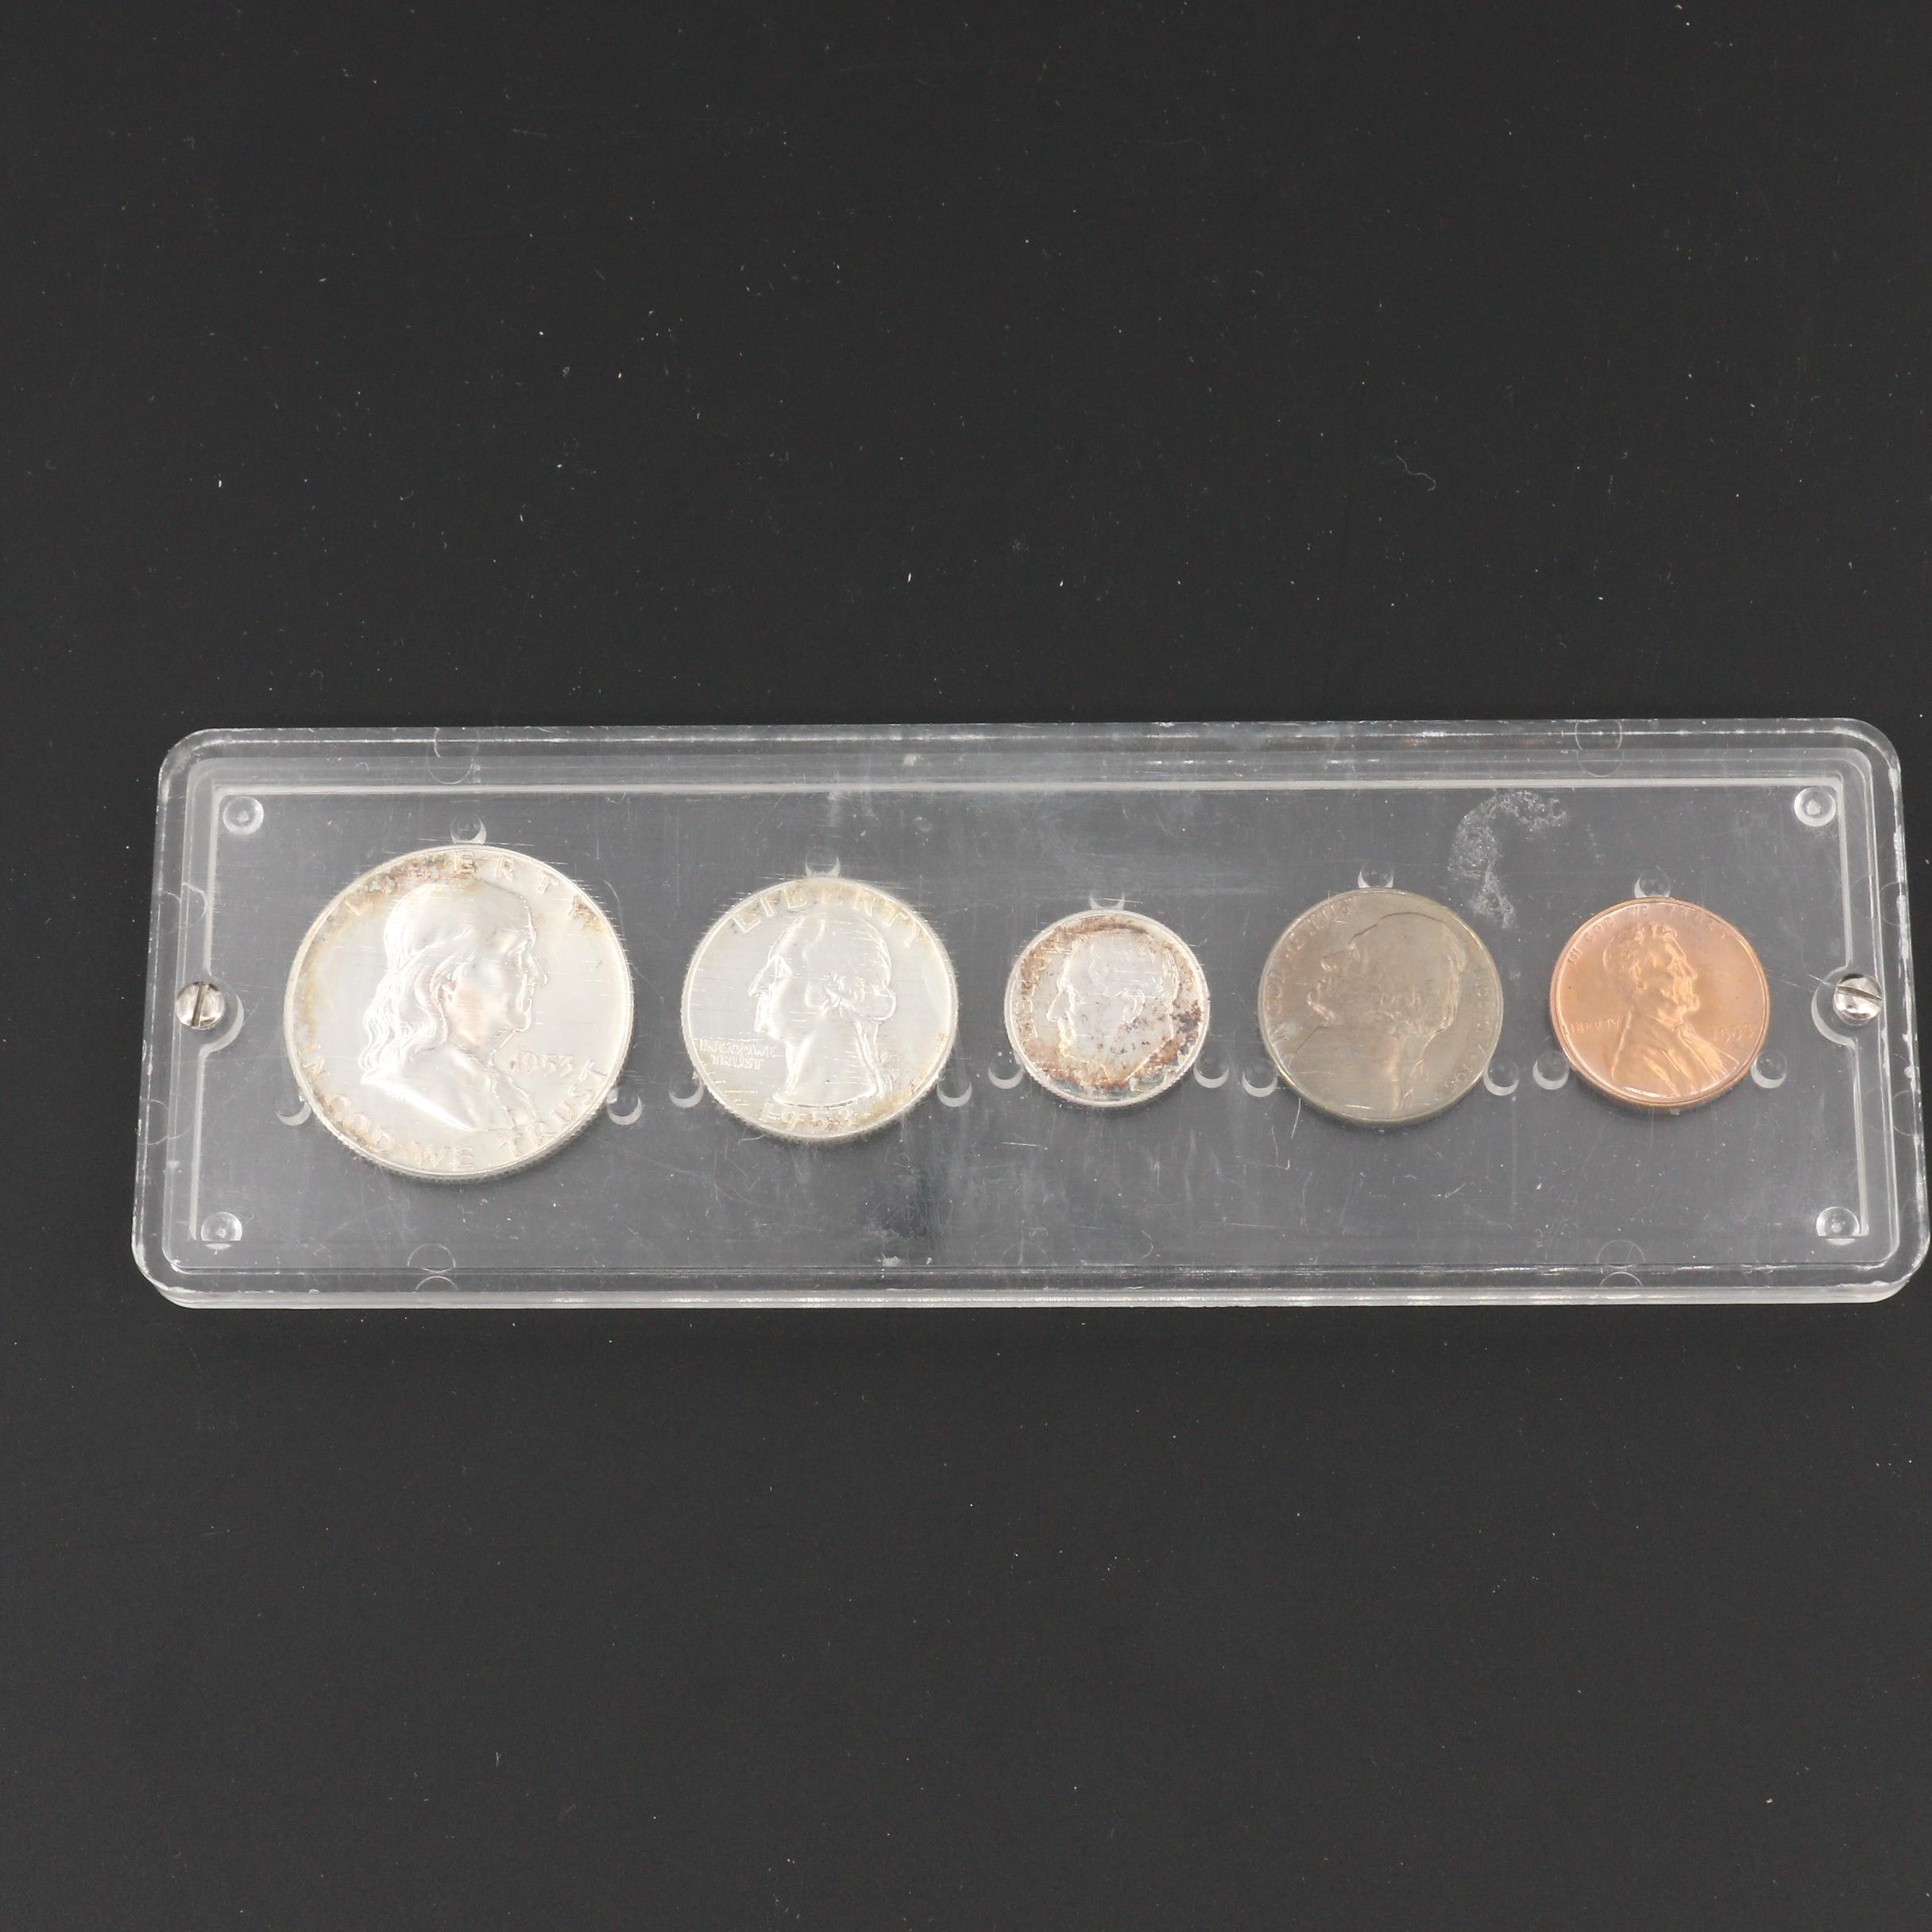 1953 U.S. Type Coin Proof Set